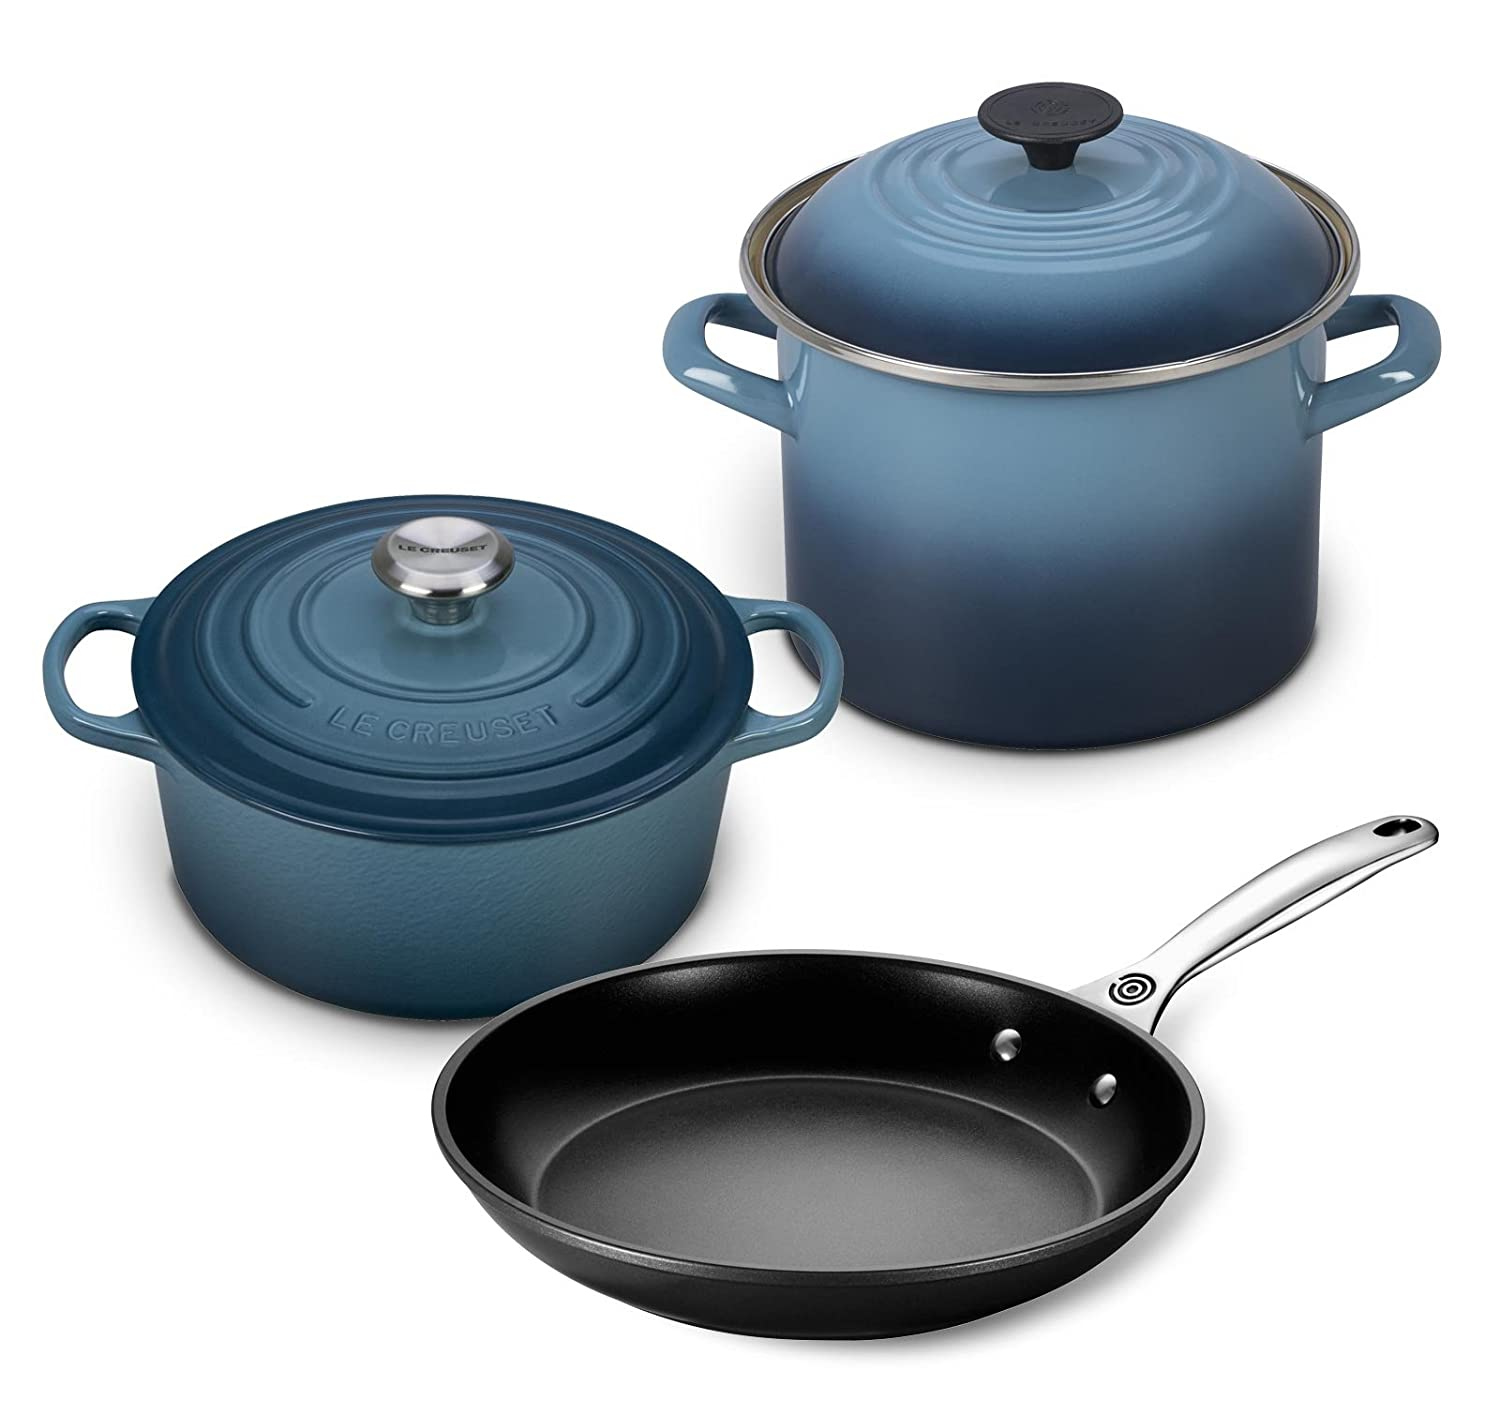 Le Creuset 5pc Oven and Stovetop Cookware Set (4.5-Quart Round Dutch Oven, 6-Quart Covered Stockpot, 10-Inch Toughened Nonstick Fry Pan) - Marine